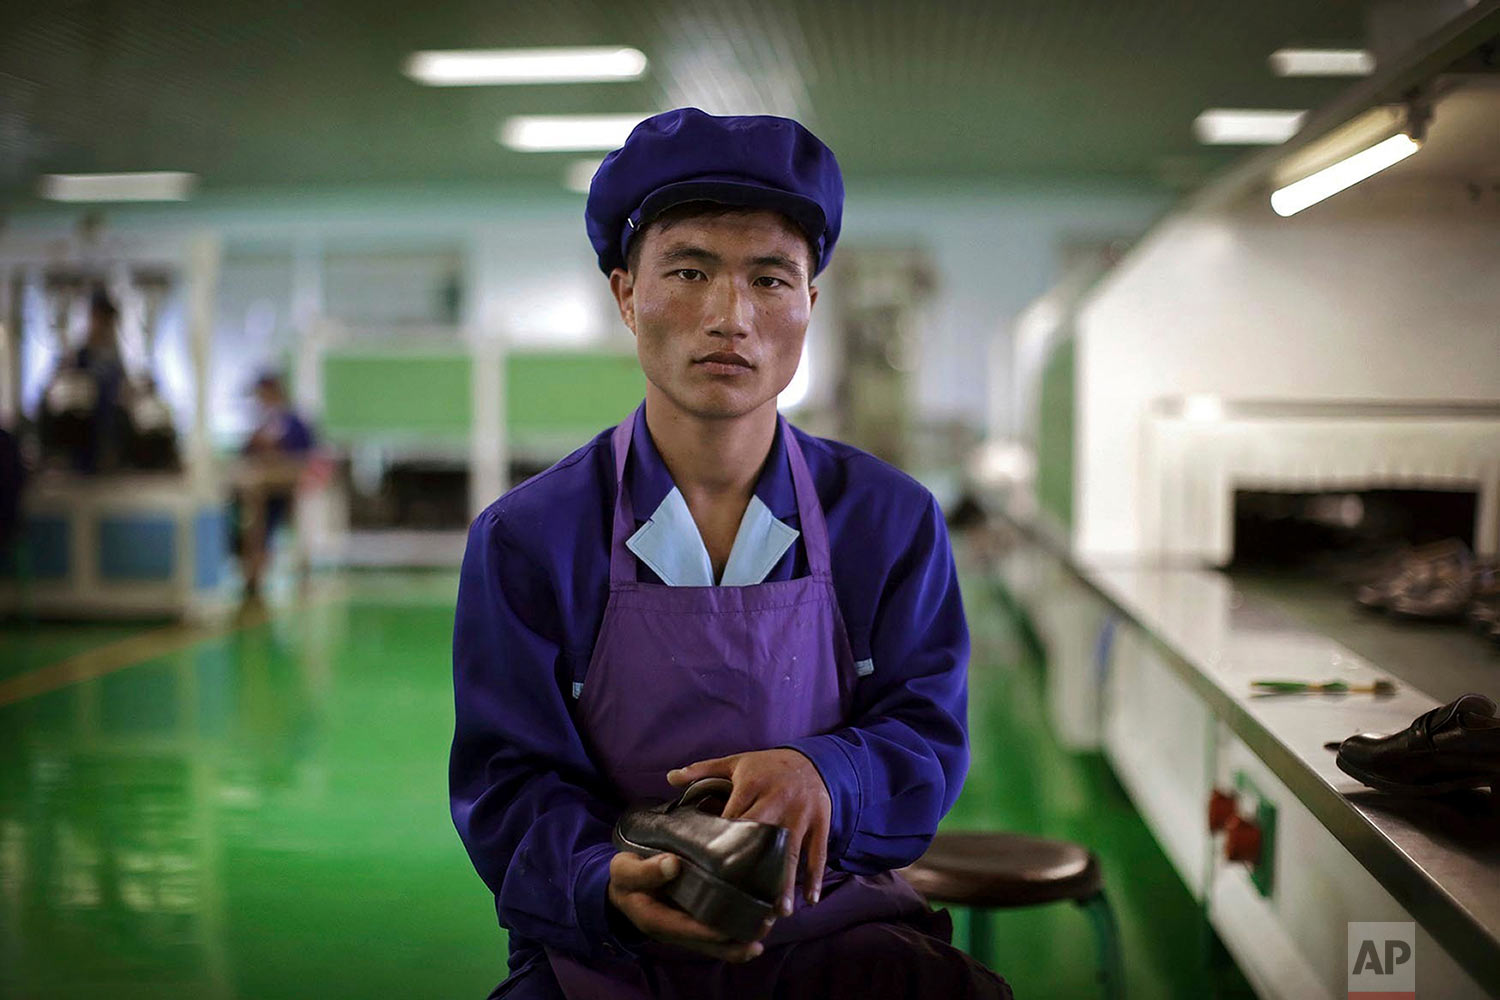 Kang Jong Jin, a 28-year old former soldier who attaches soles to shoes at a shoe factory in Wonsan, North Korea, poses for a portrait at his work station on June 22, 2016. (AP Photo/Wong Maye-E)